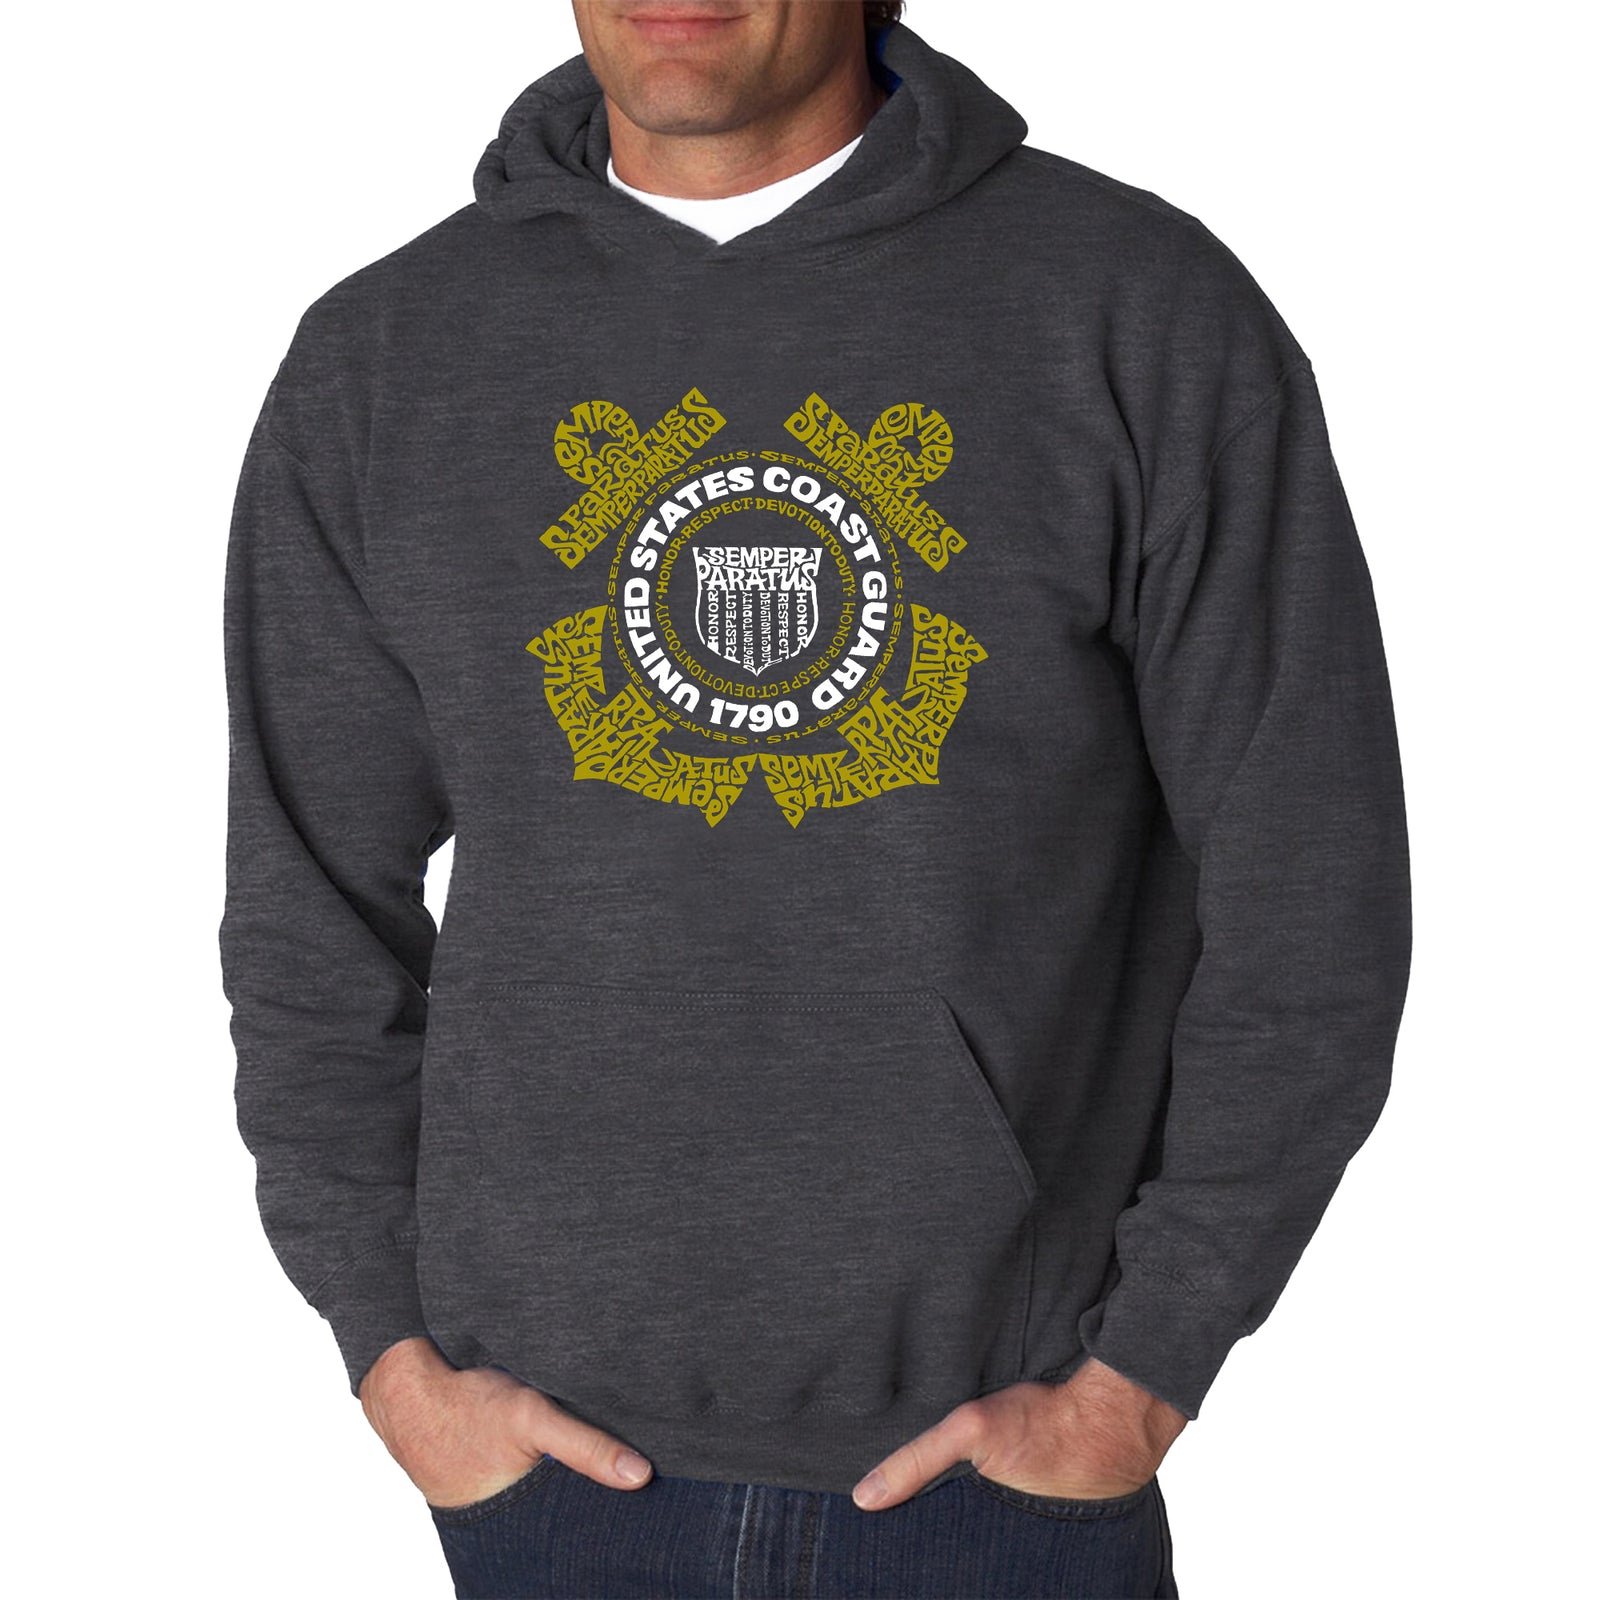 Men's Word Art Hooded Sweatshirt - Coast Guard